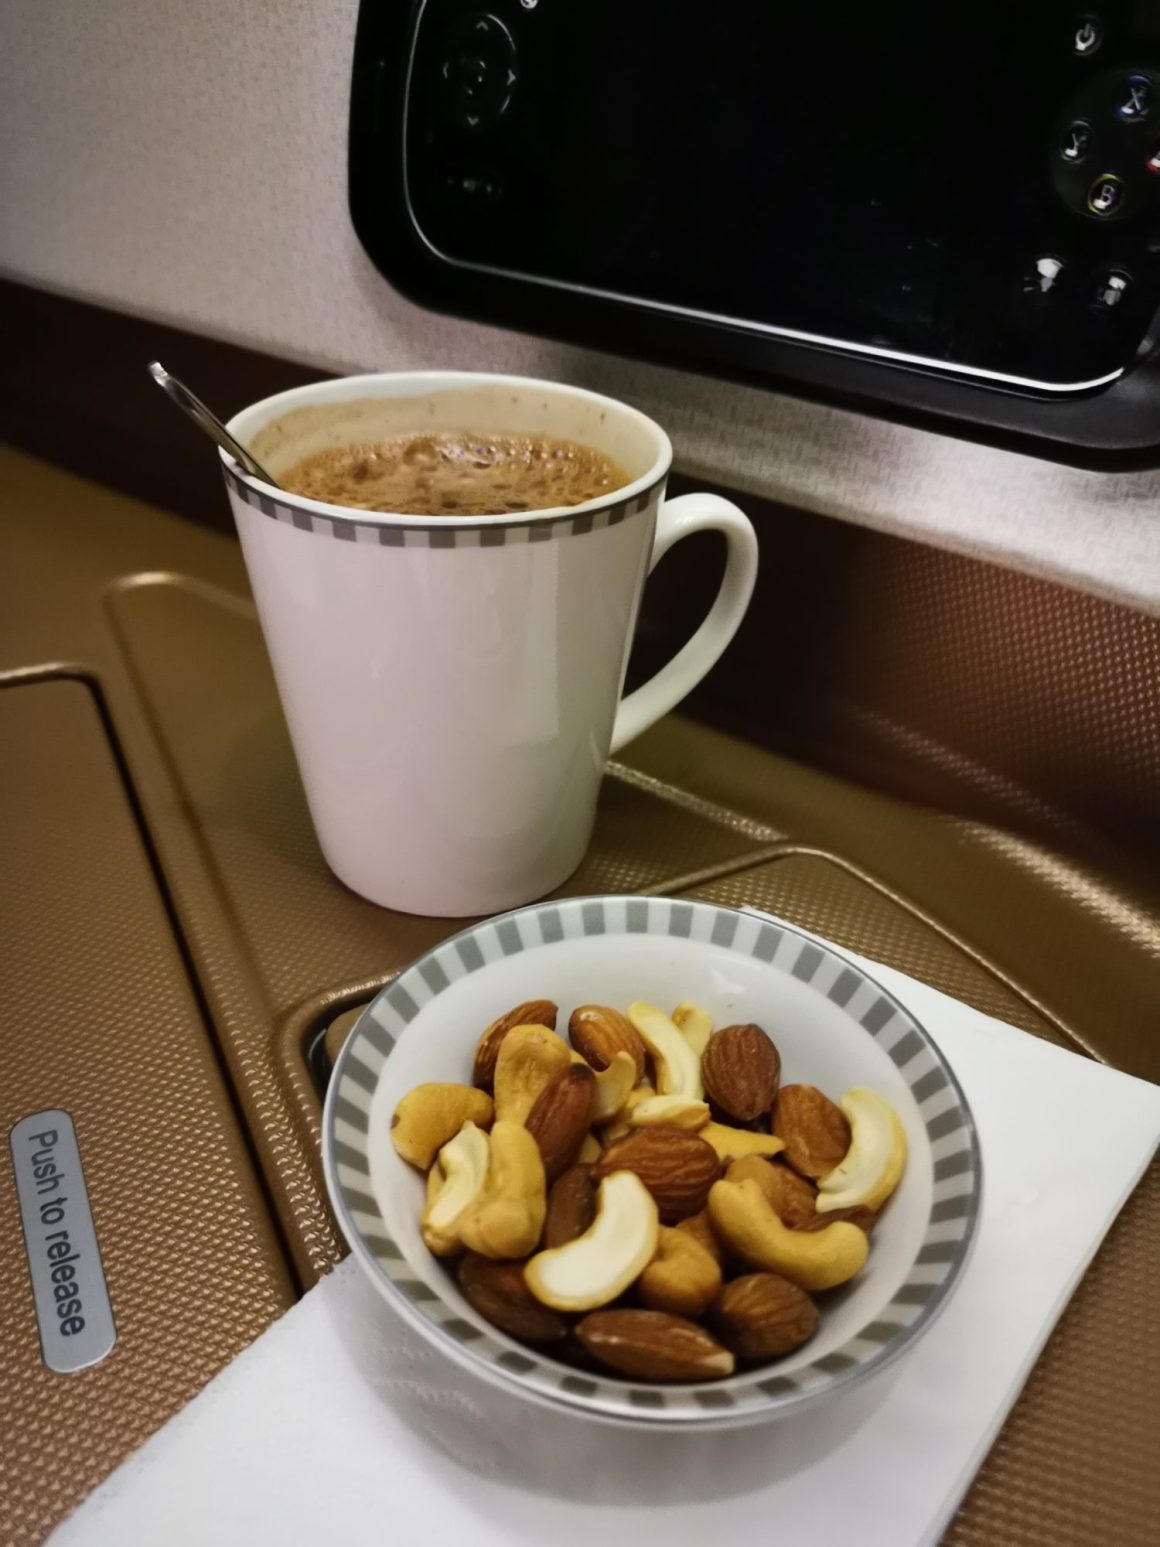 Singapore Airlines Business Class SQ334 From Singapore To Paris – Snack